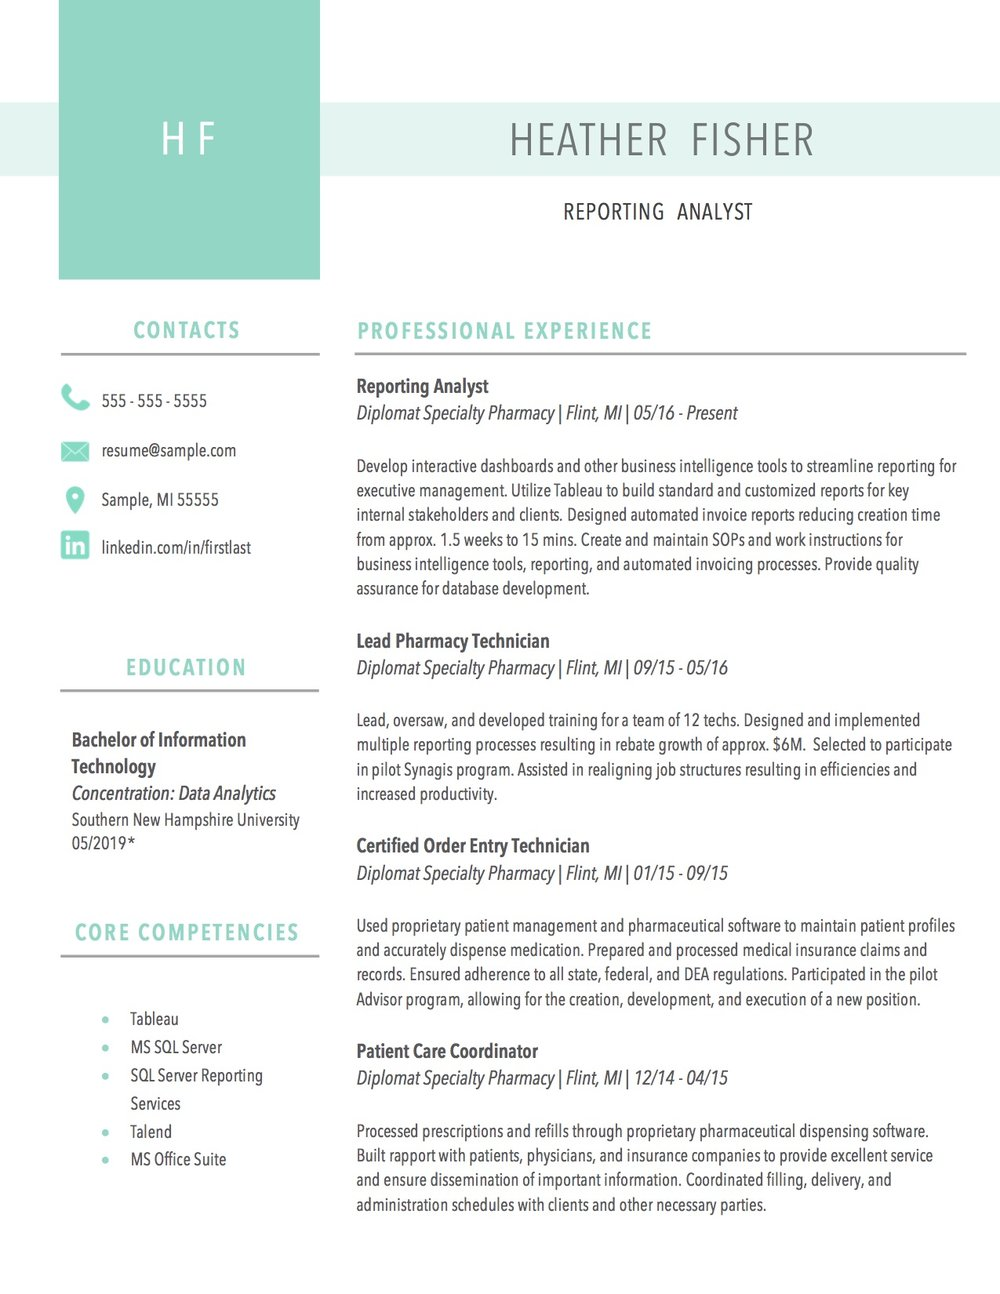 Client Resume #10. Click to enlarge.